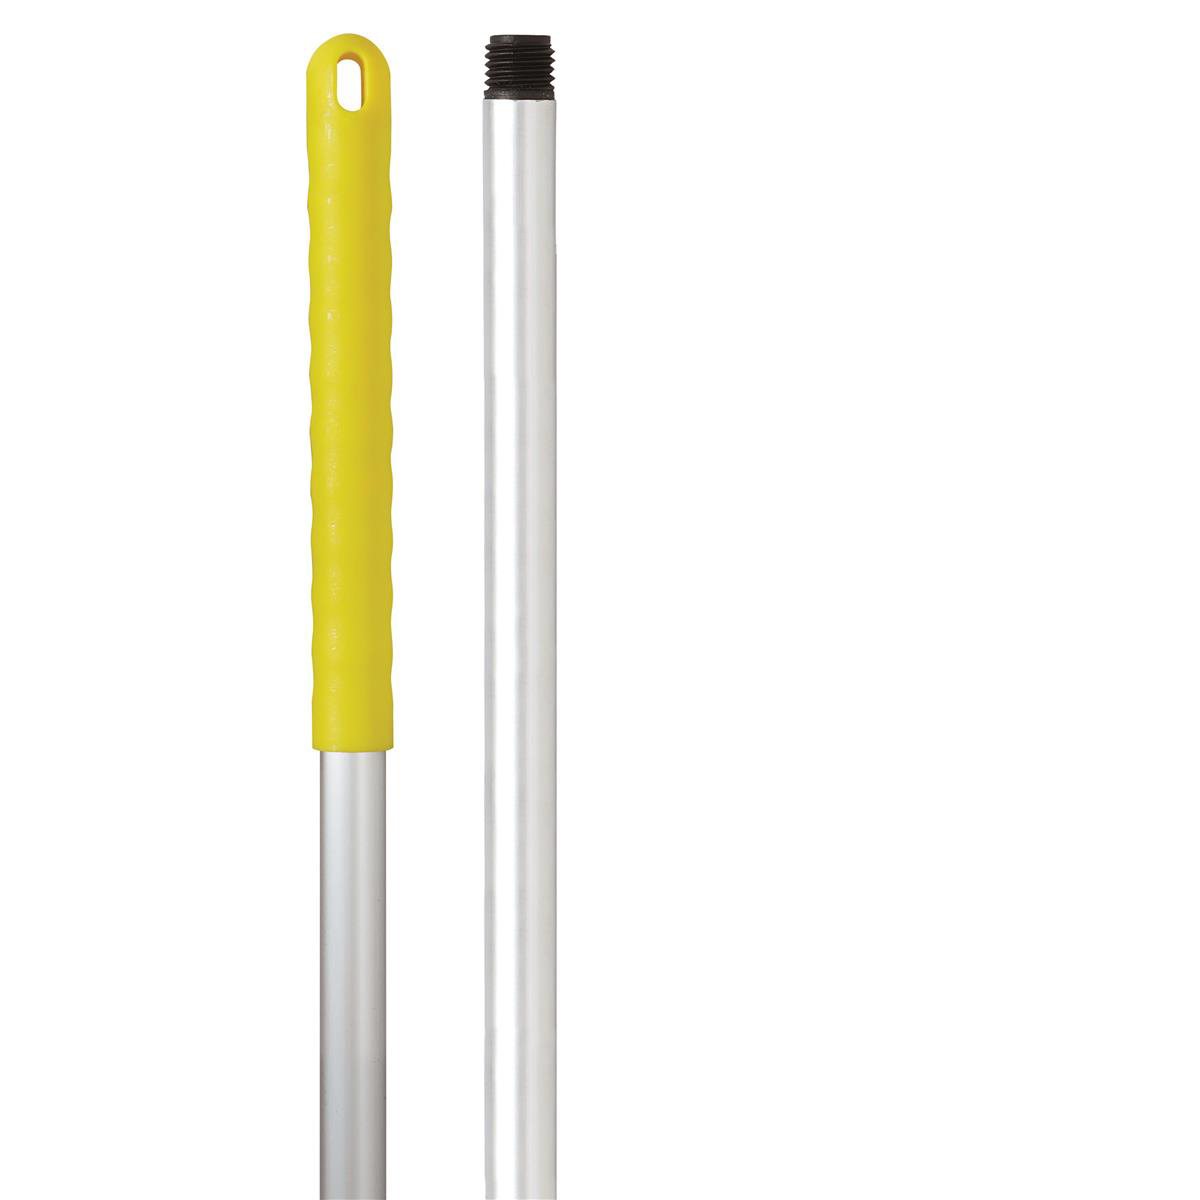 Broom or mop handles Robert Scott & Sons Abbey Hygiene Mop Handle Aluminium Colour-coded Screw 125cm Yellow Ref AH49Y